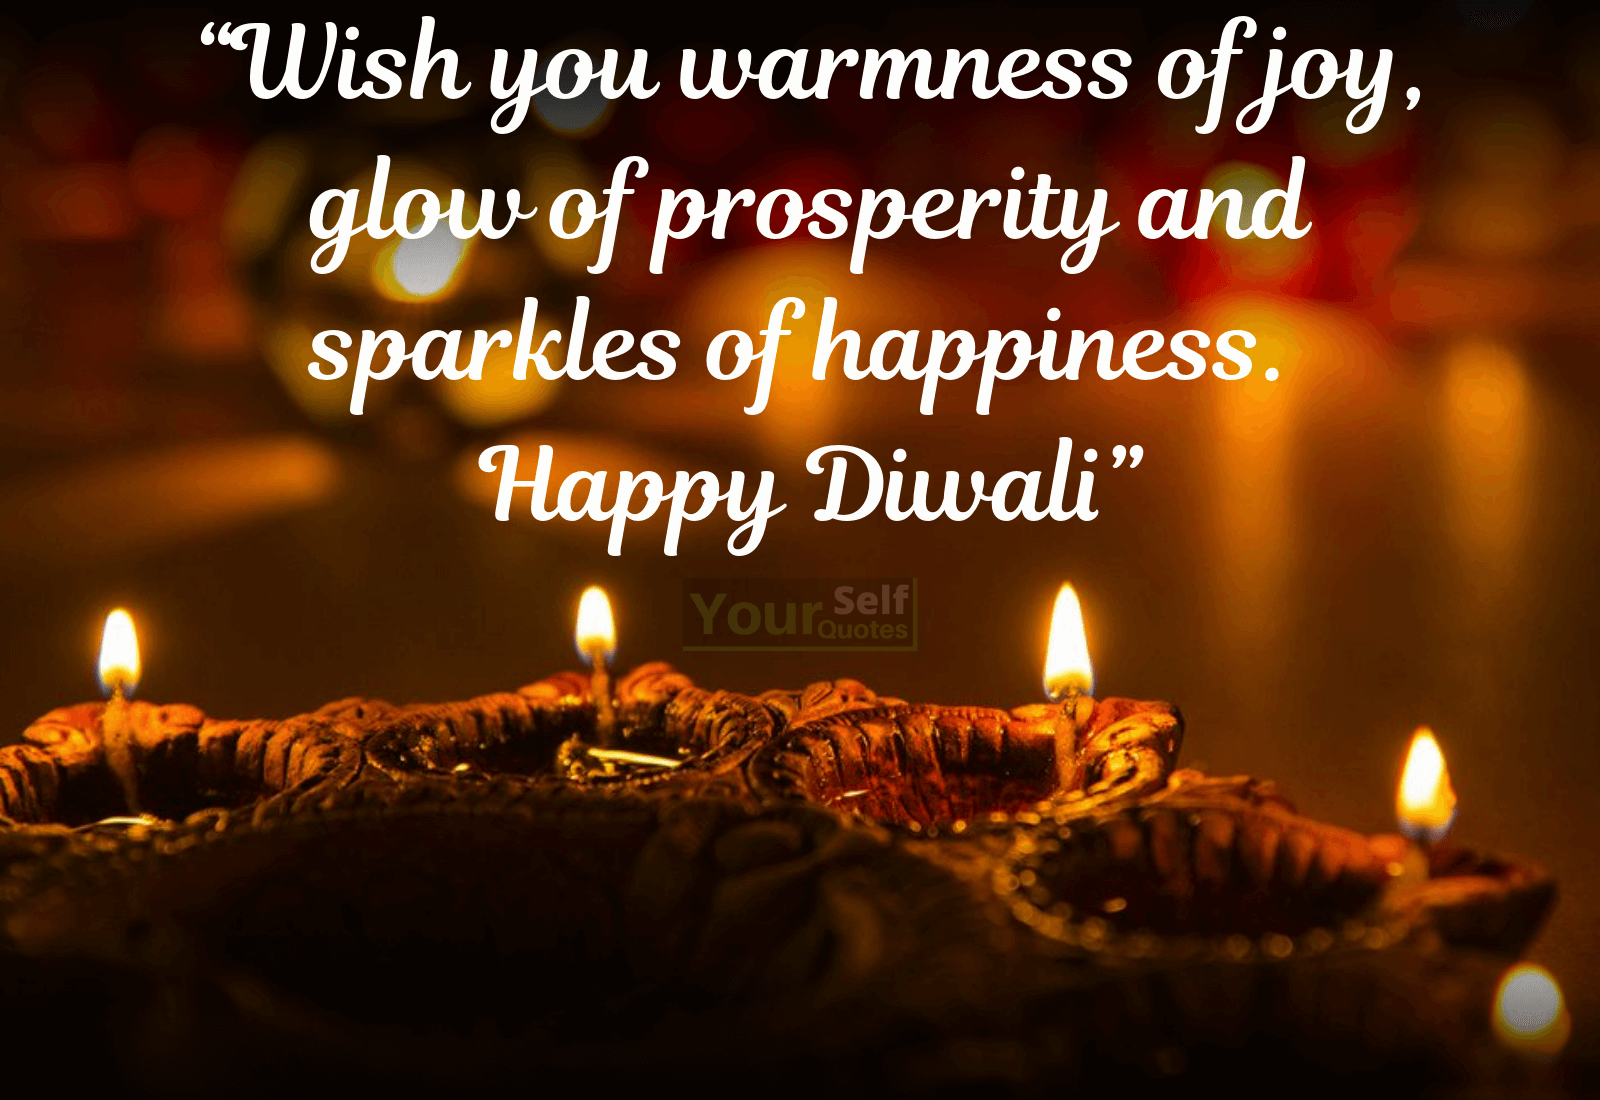 Best Happy Diwali Wishes Wallpaper